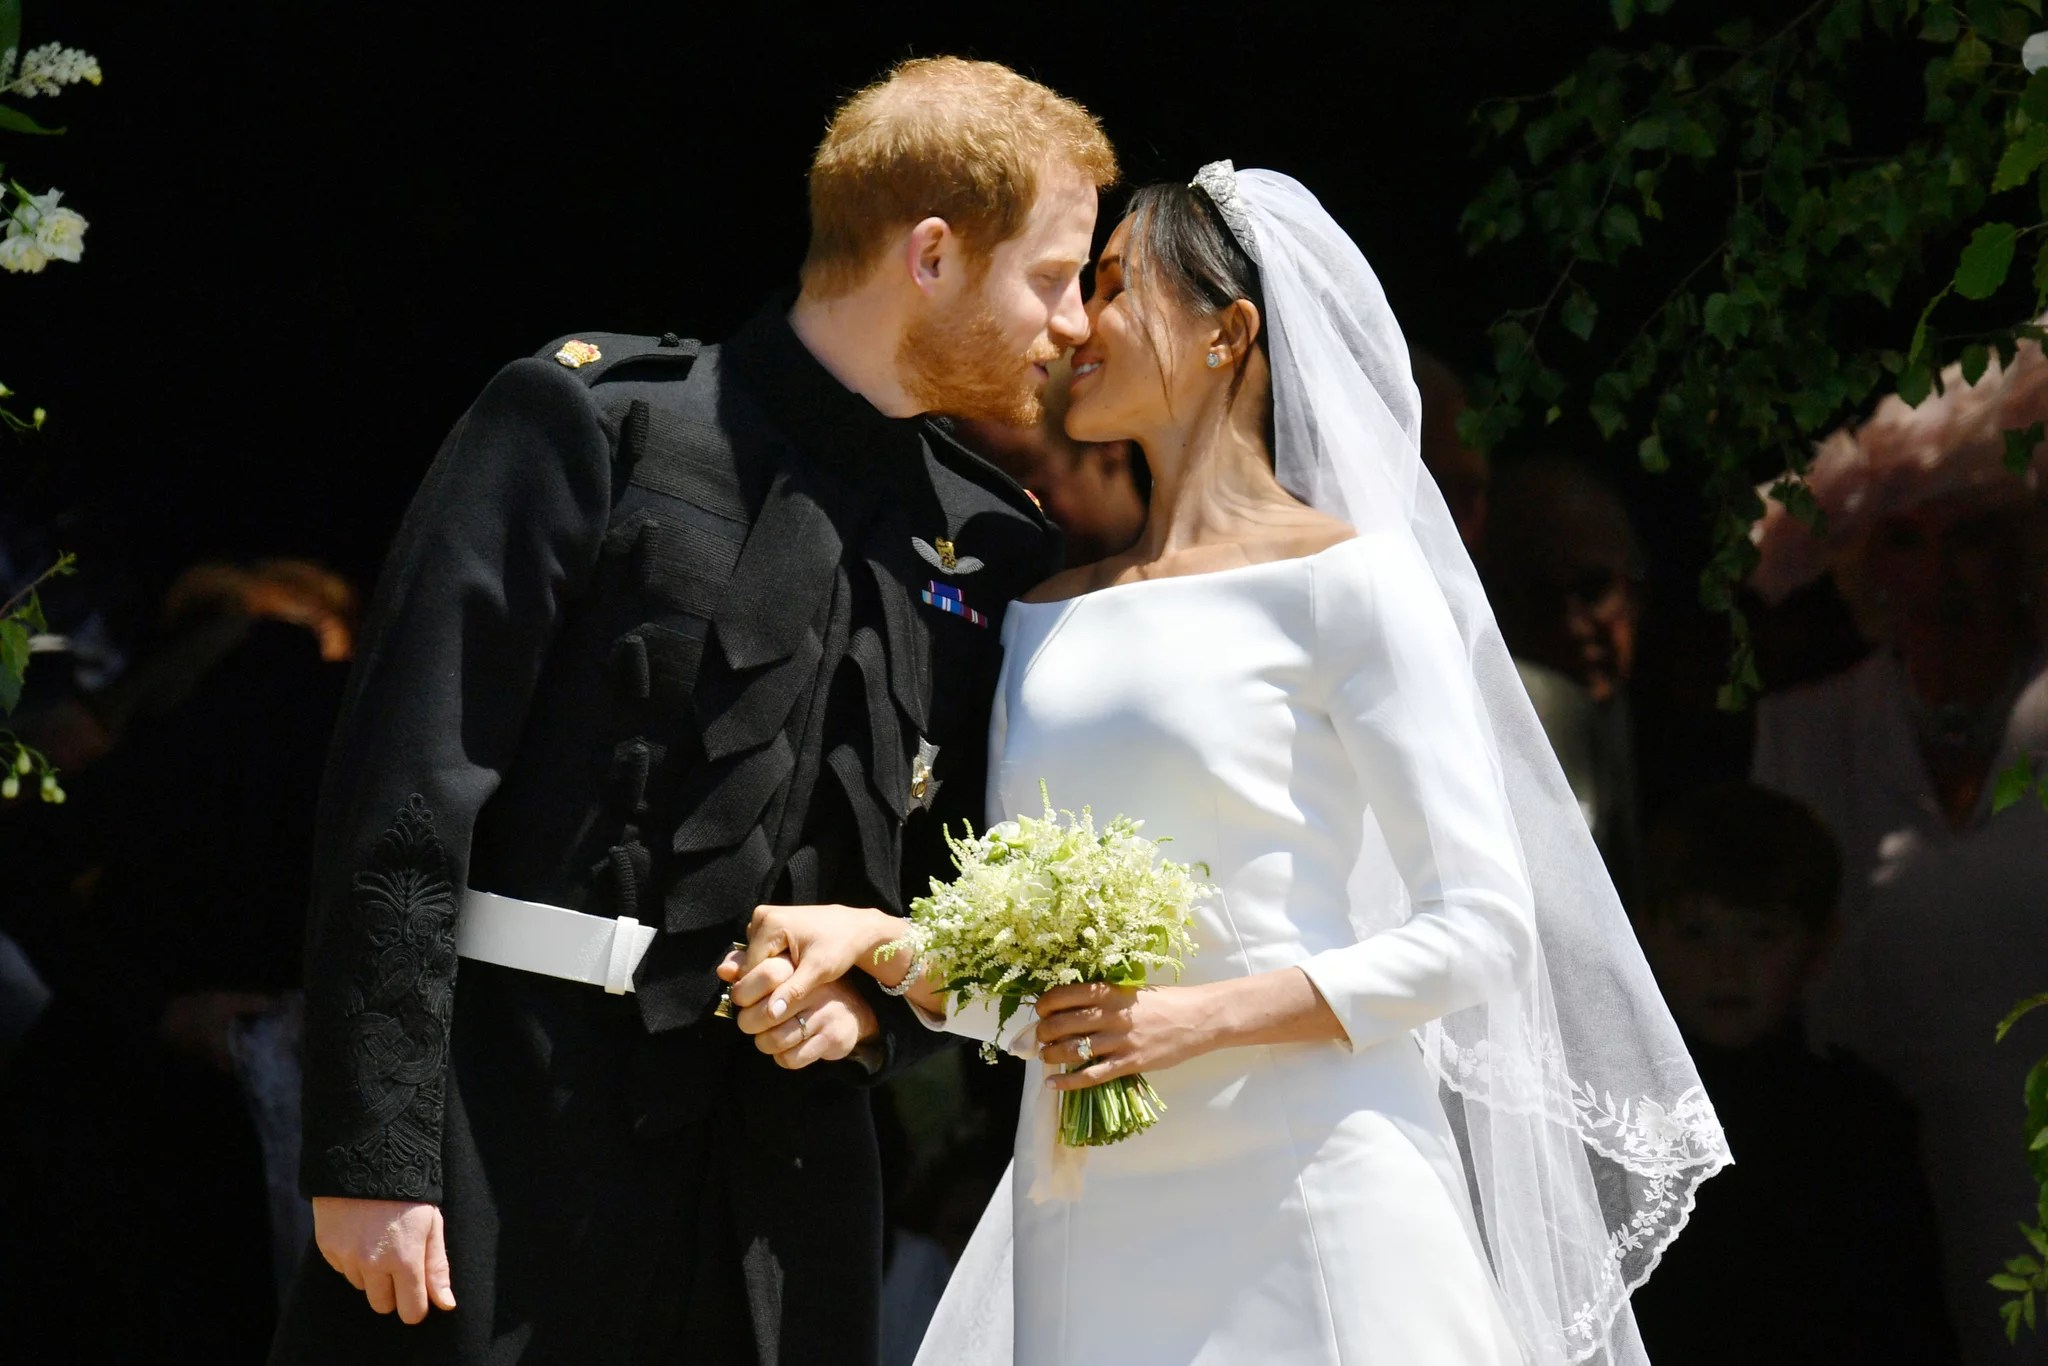 Britain's Prince Harry, Duke of Sussex kisses his wife Meghan, Duchess of Sussex as they leave from the West Door of St George's Chapel, Windsor Castle, in Windsor, on May 19, 2018 after their wedding ceremony. (Photo by Ben Birchall / POOL / AFP)        (Photo credit should read BEN BIRCHALL/AFP/Getty Images)